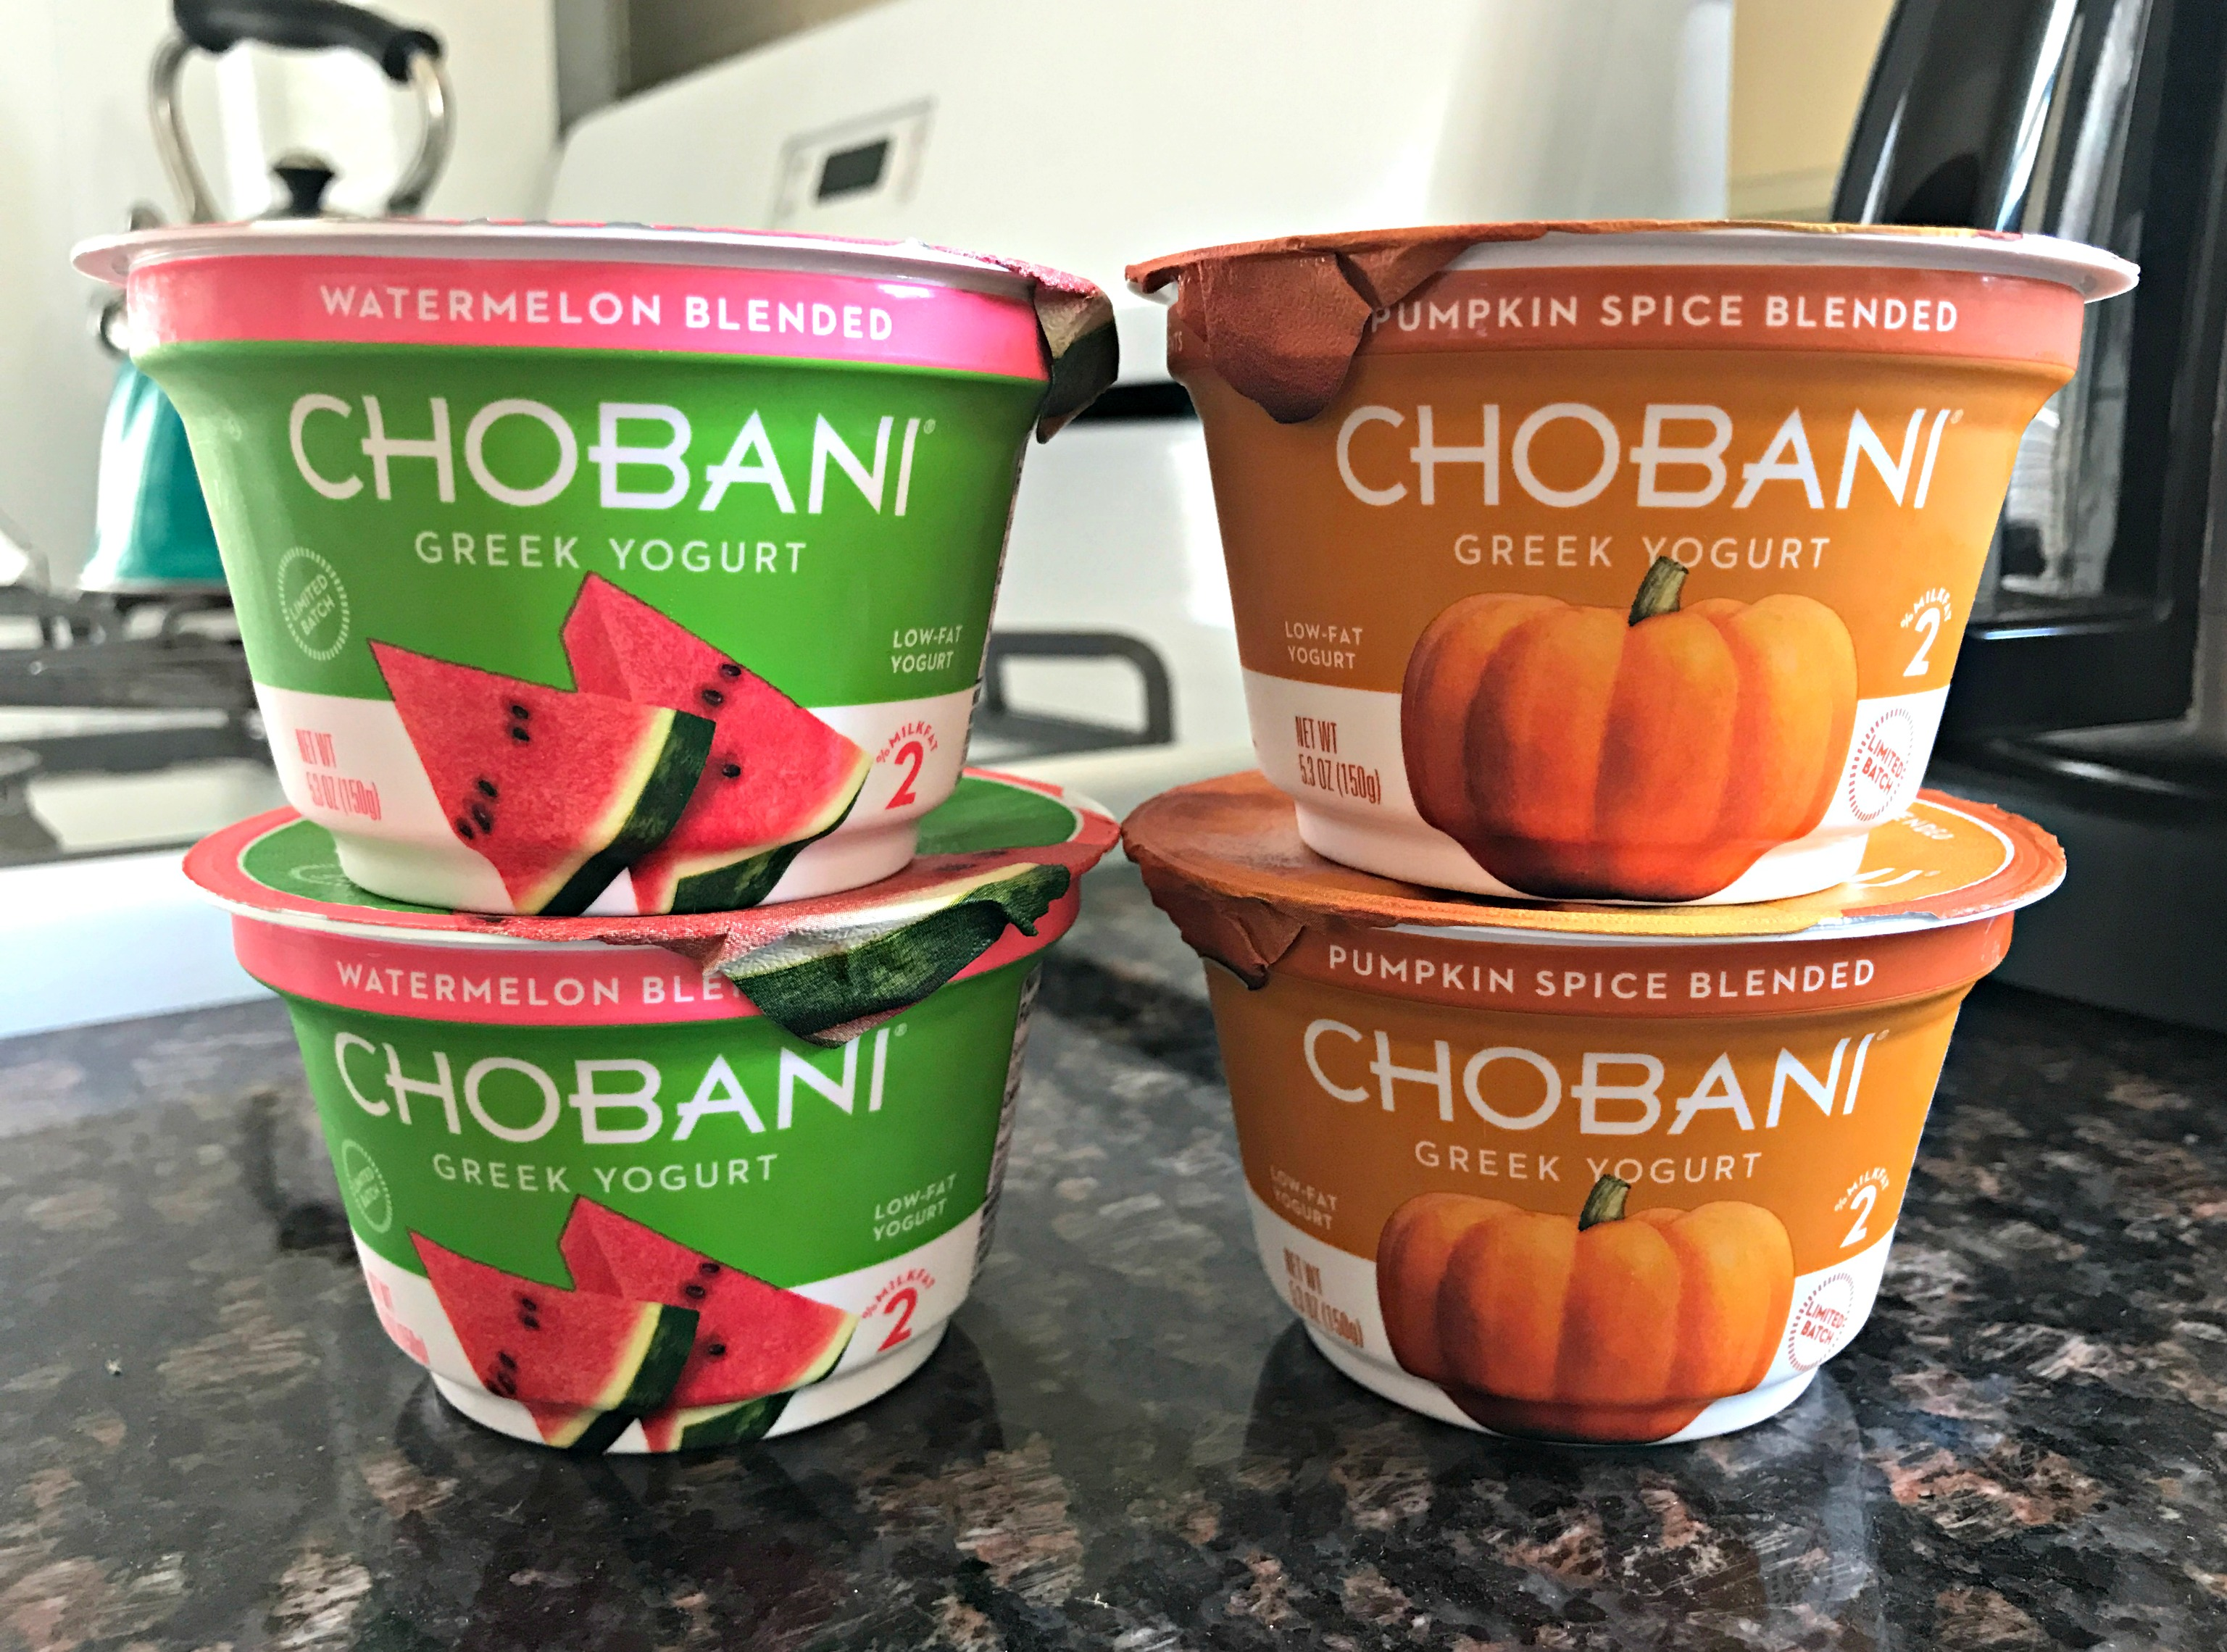 chobani watermelon and pumpkin spice blended greek yogurt